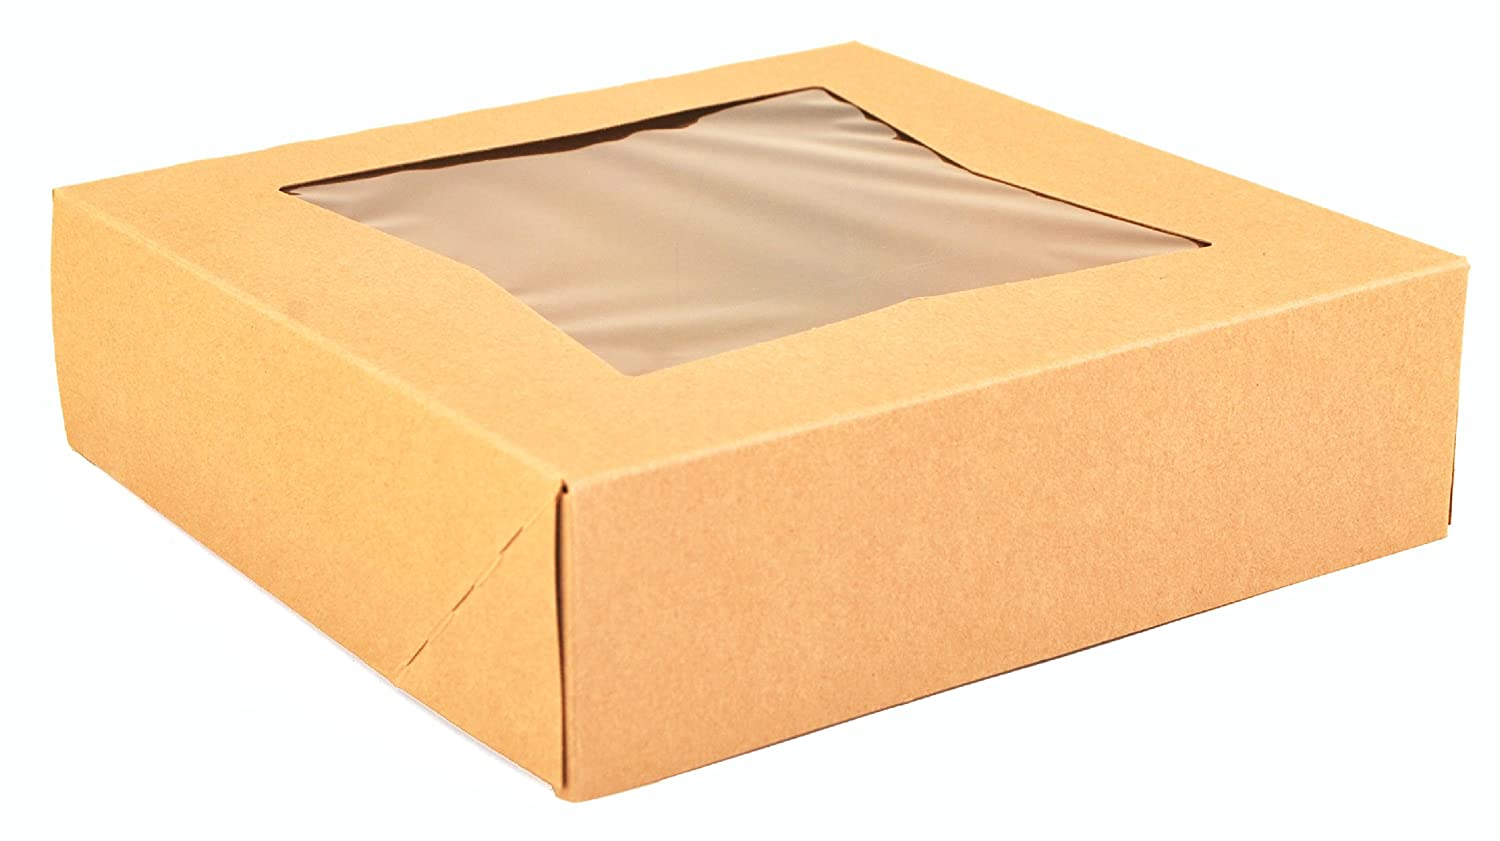 Southern Champion Tray 24133K Kraft Paperboard Window Bakery Box, 9 Length x 9 Width x 2-1/2 Height (Case of 200)